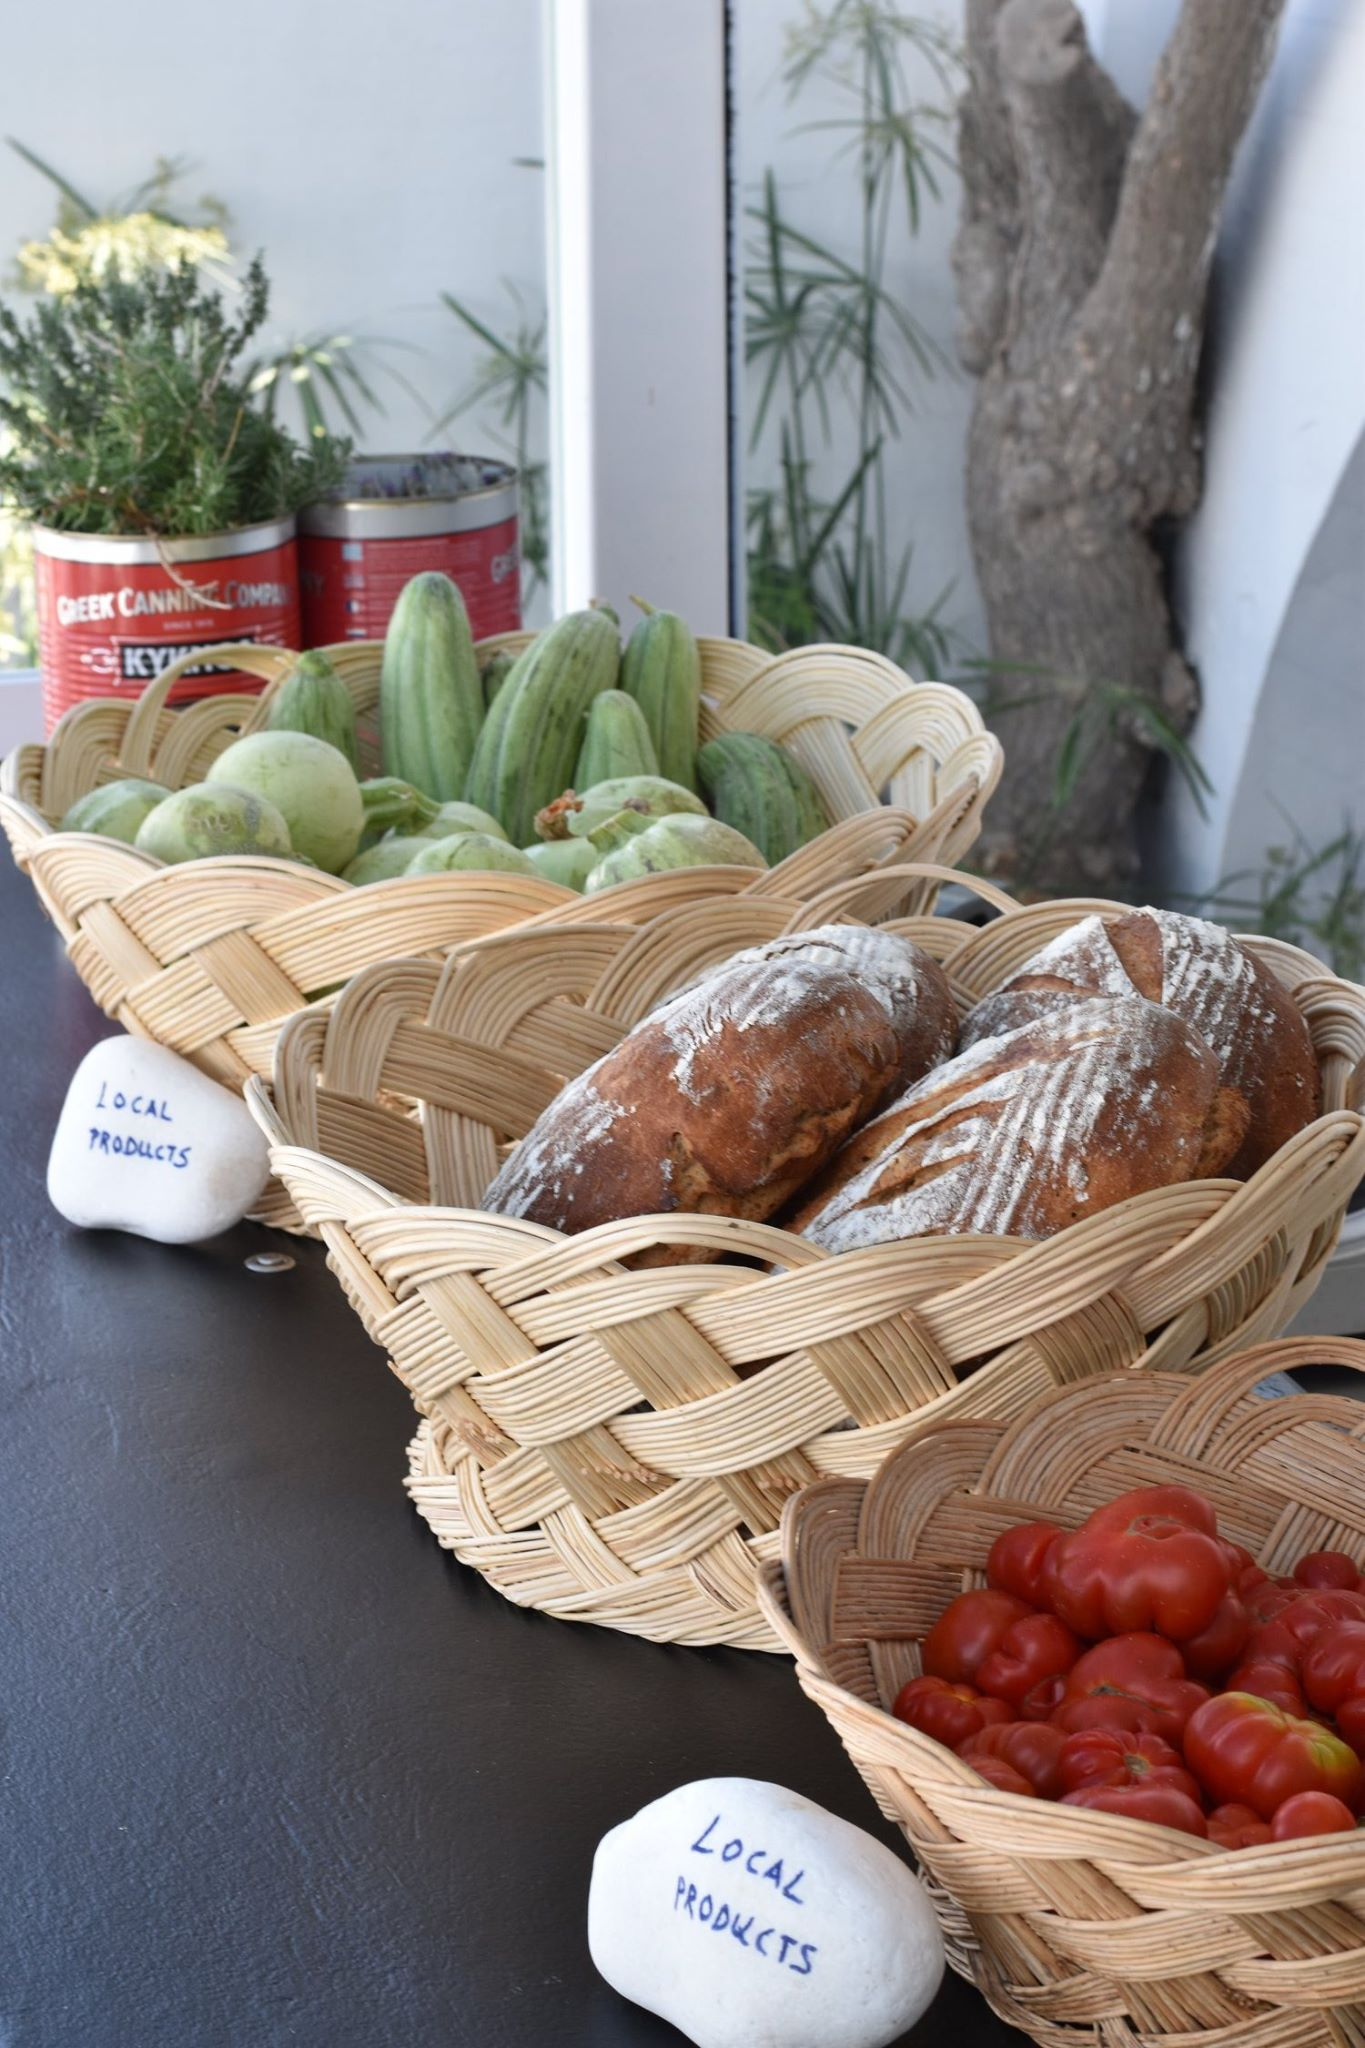 Santorini Insiders': The Products You Must Try!